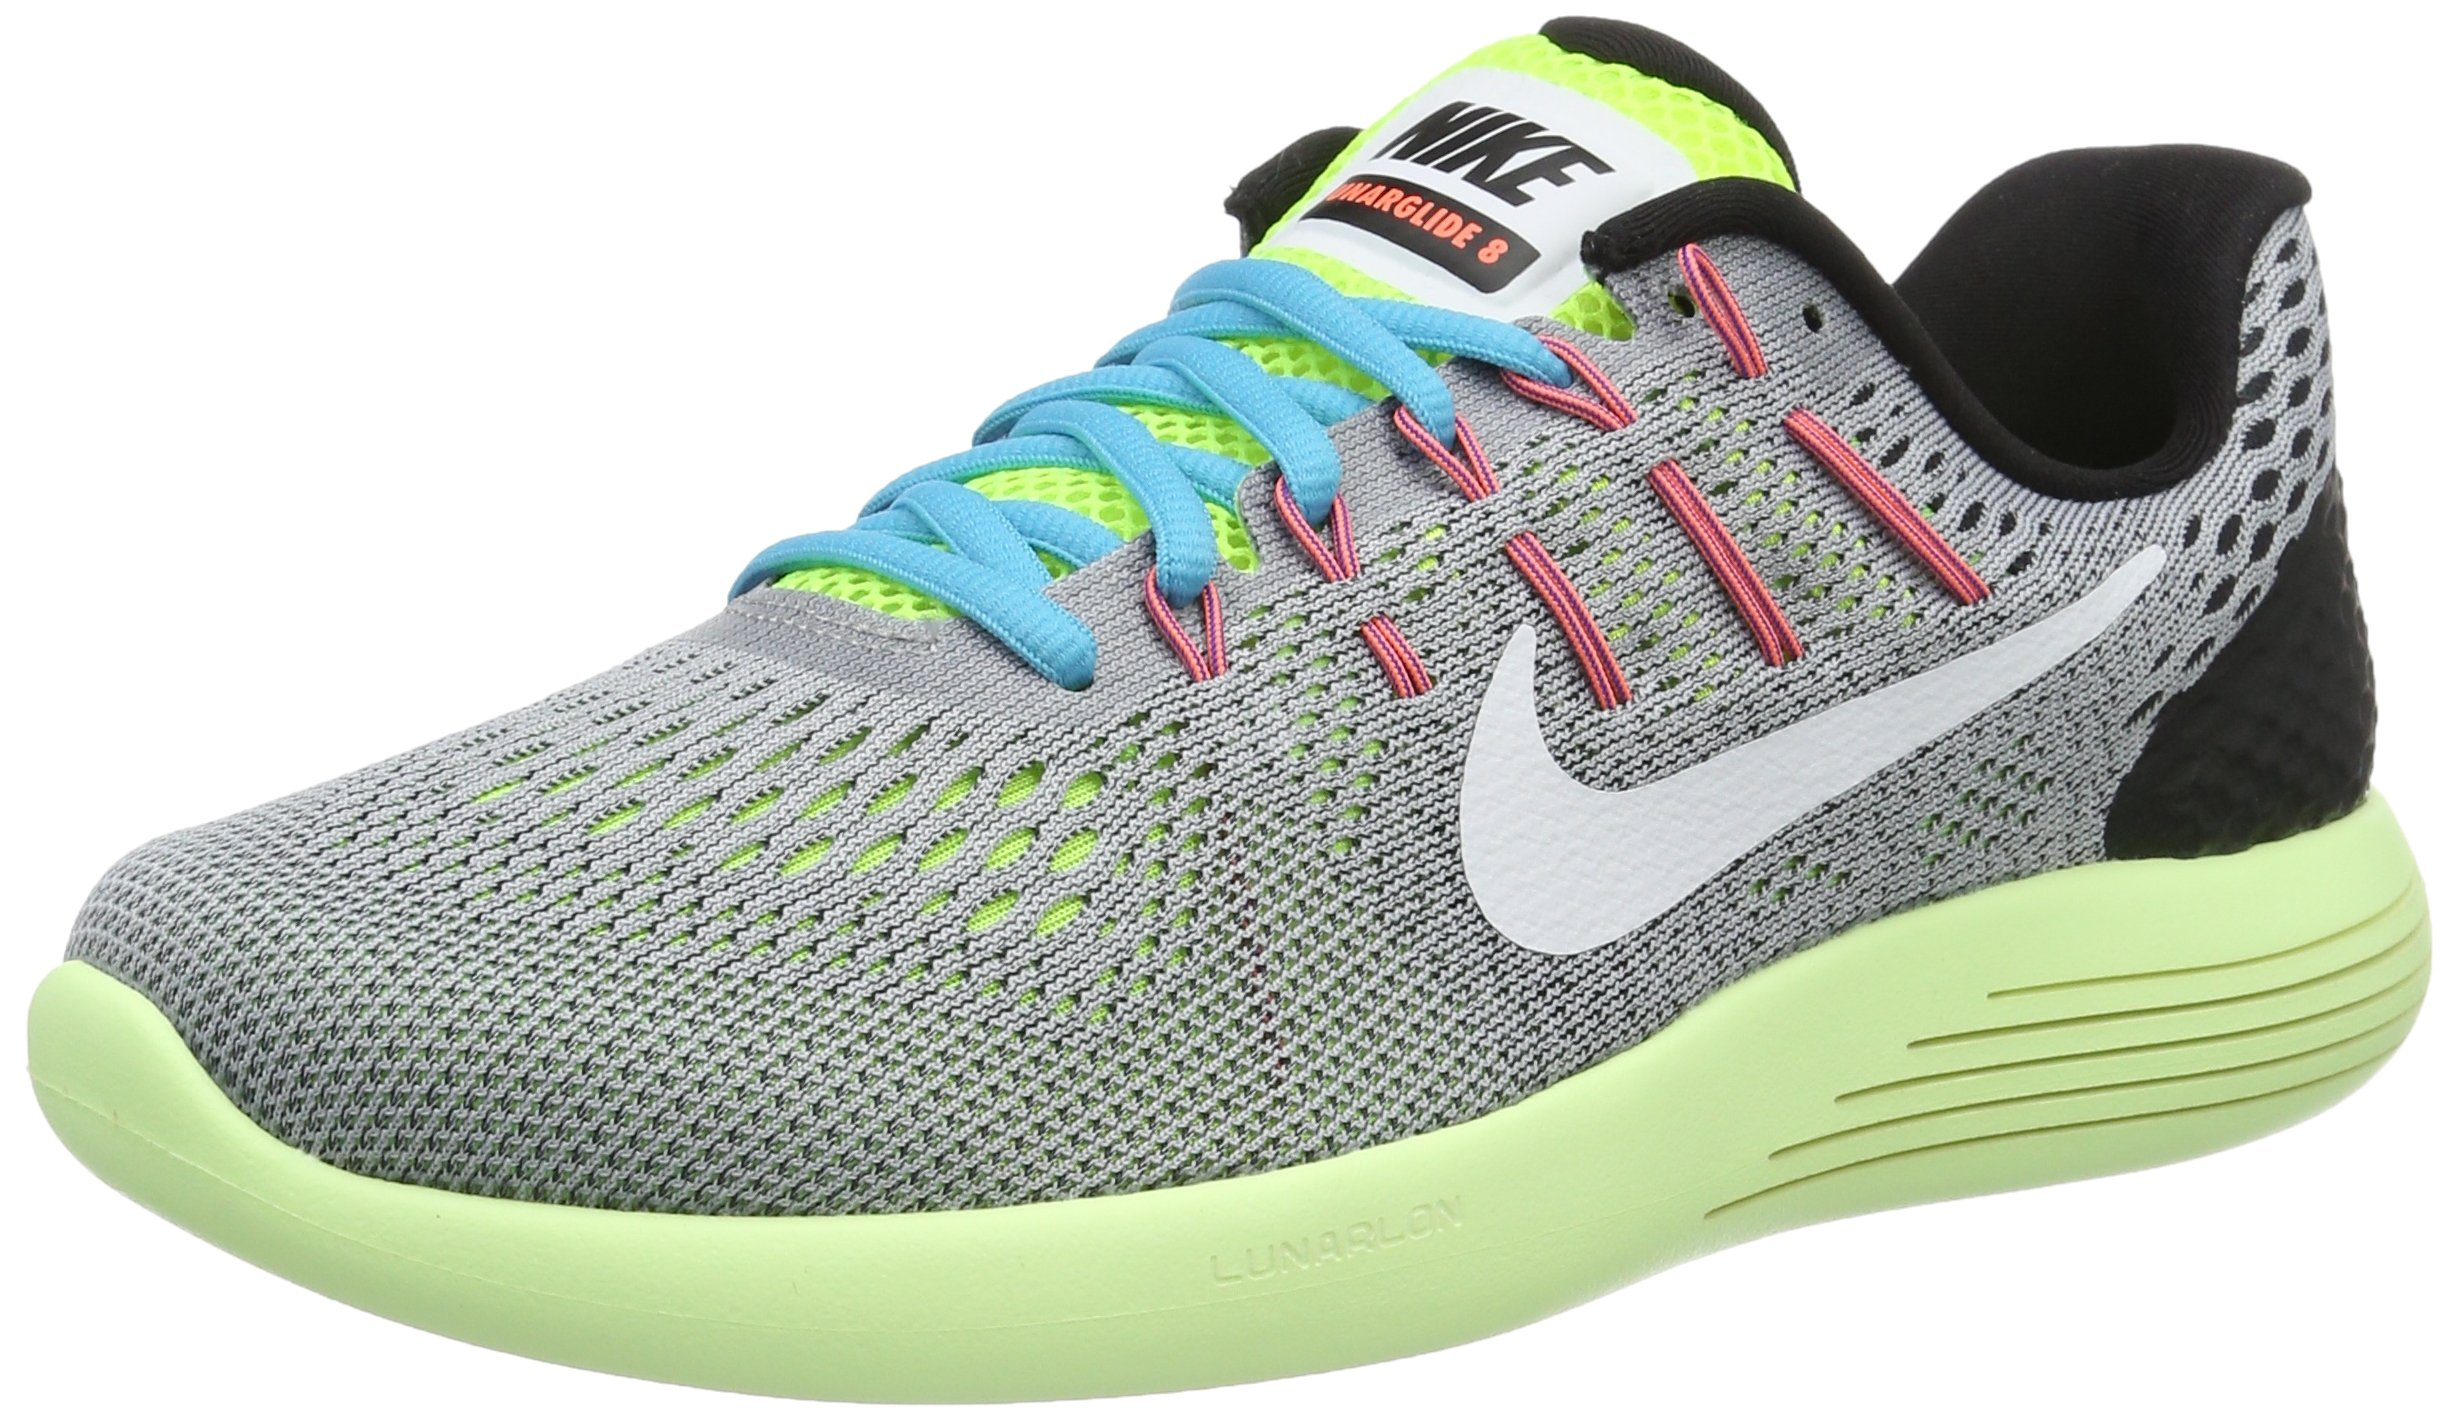 Galleon - NIKE Mens Lunarglide 8 Running Shoes Wolf Grey White Volt Gamma  Blue 843725-017 Size 9.5 3520f8bd778